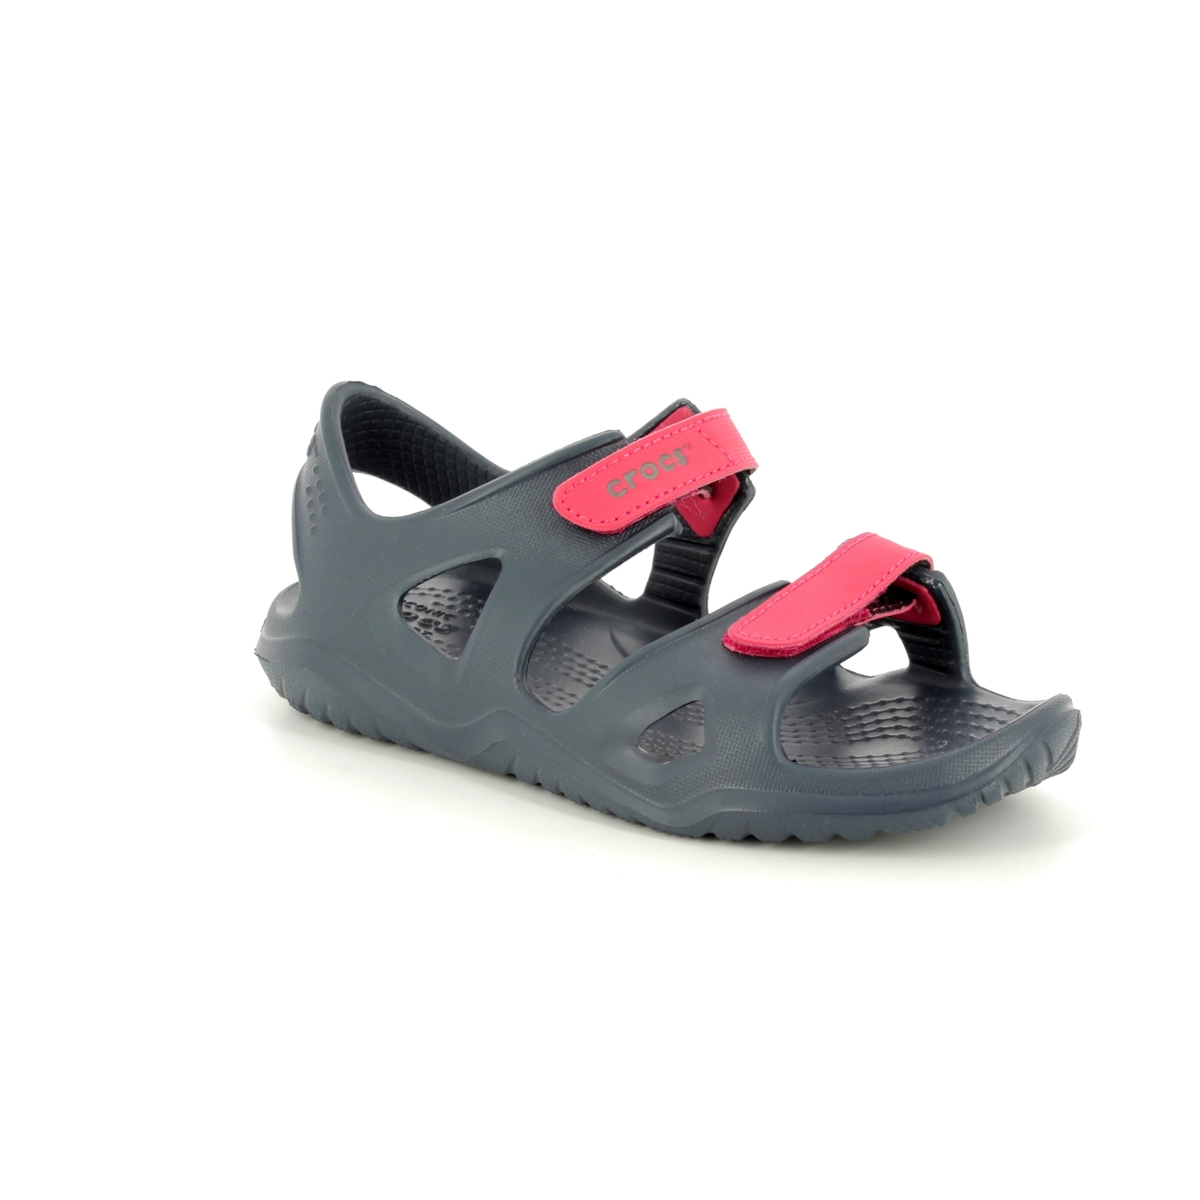 dea546e34cf8 Crocs Sandals - Navy multi - 204988 4BA SWIFTWATER KID